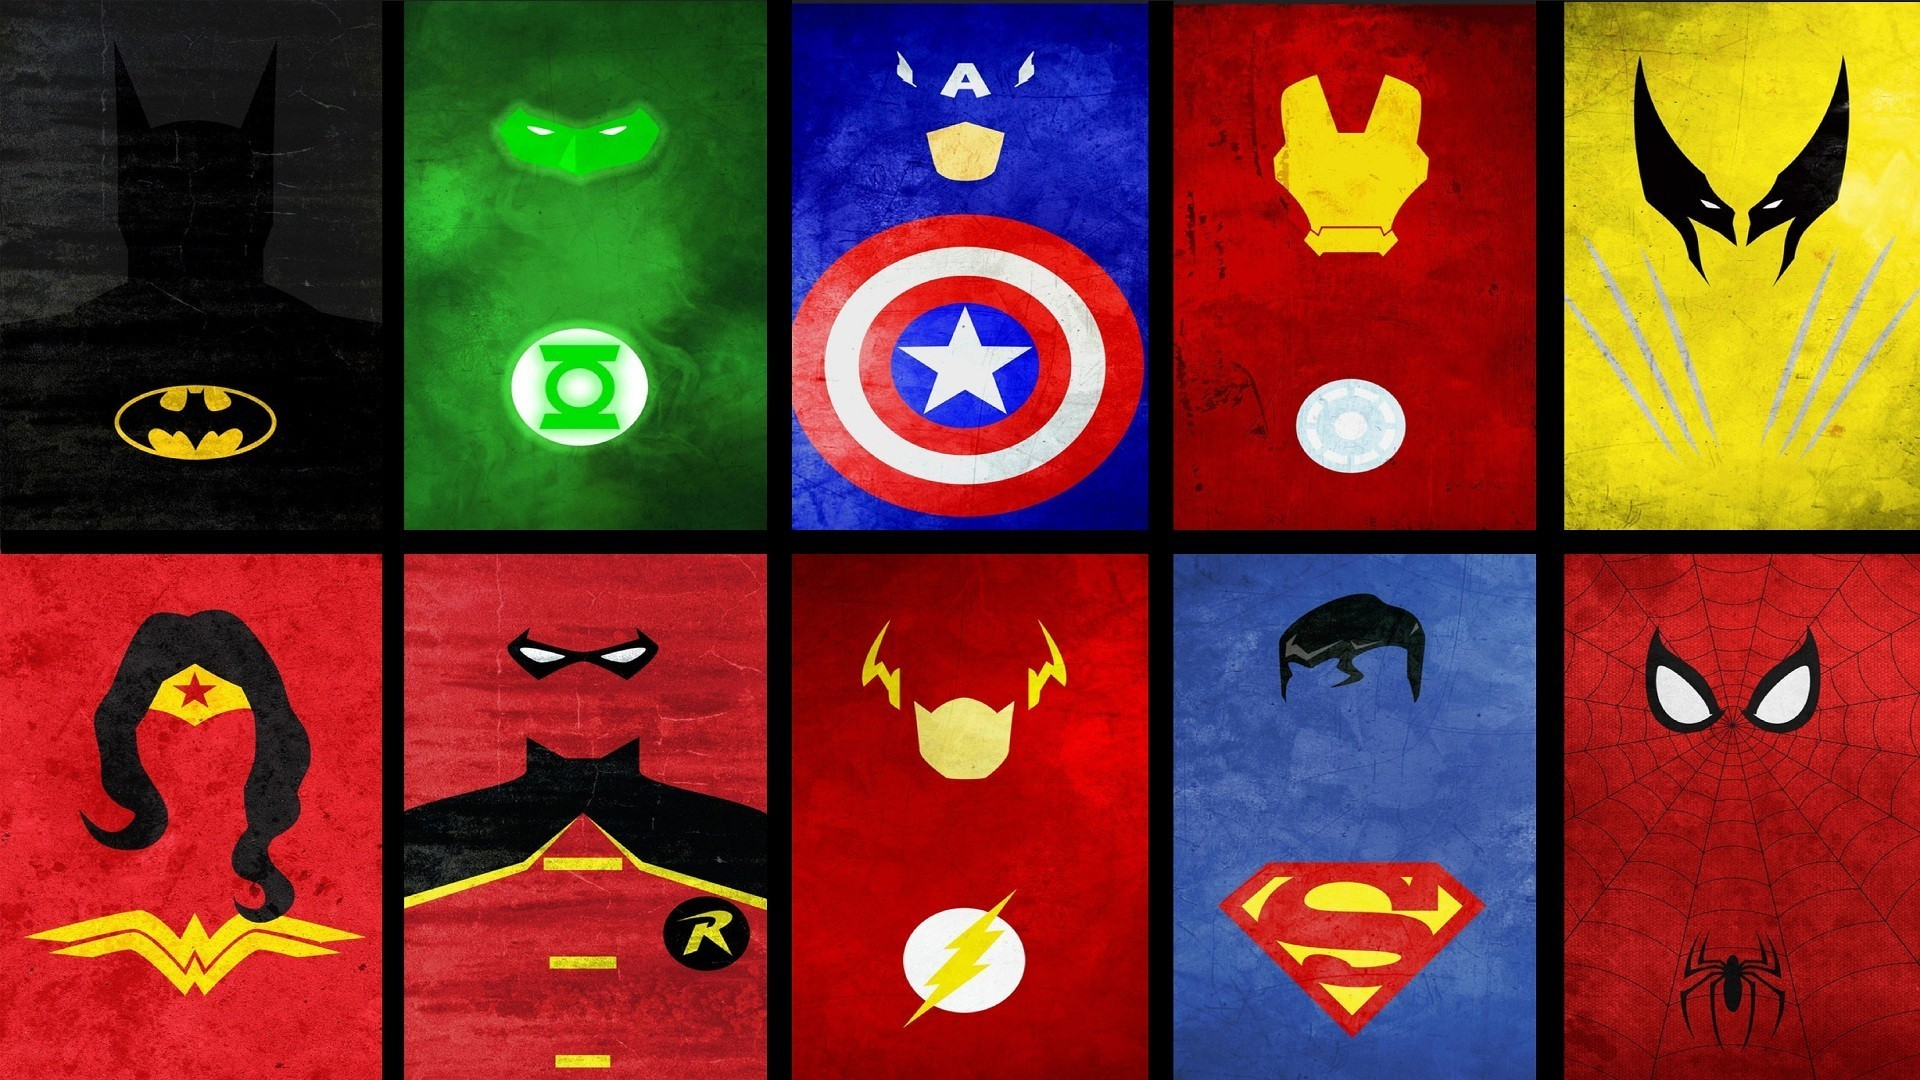 Superheroes collage wallpaper